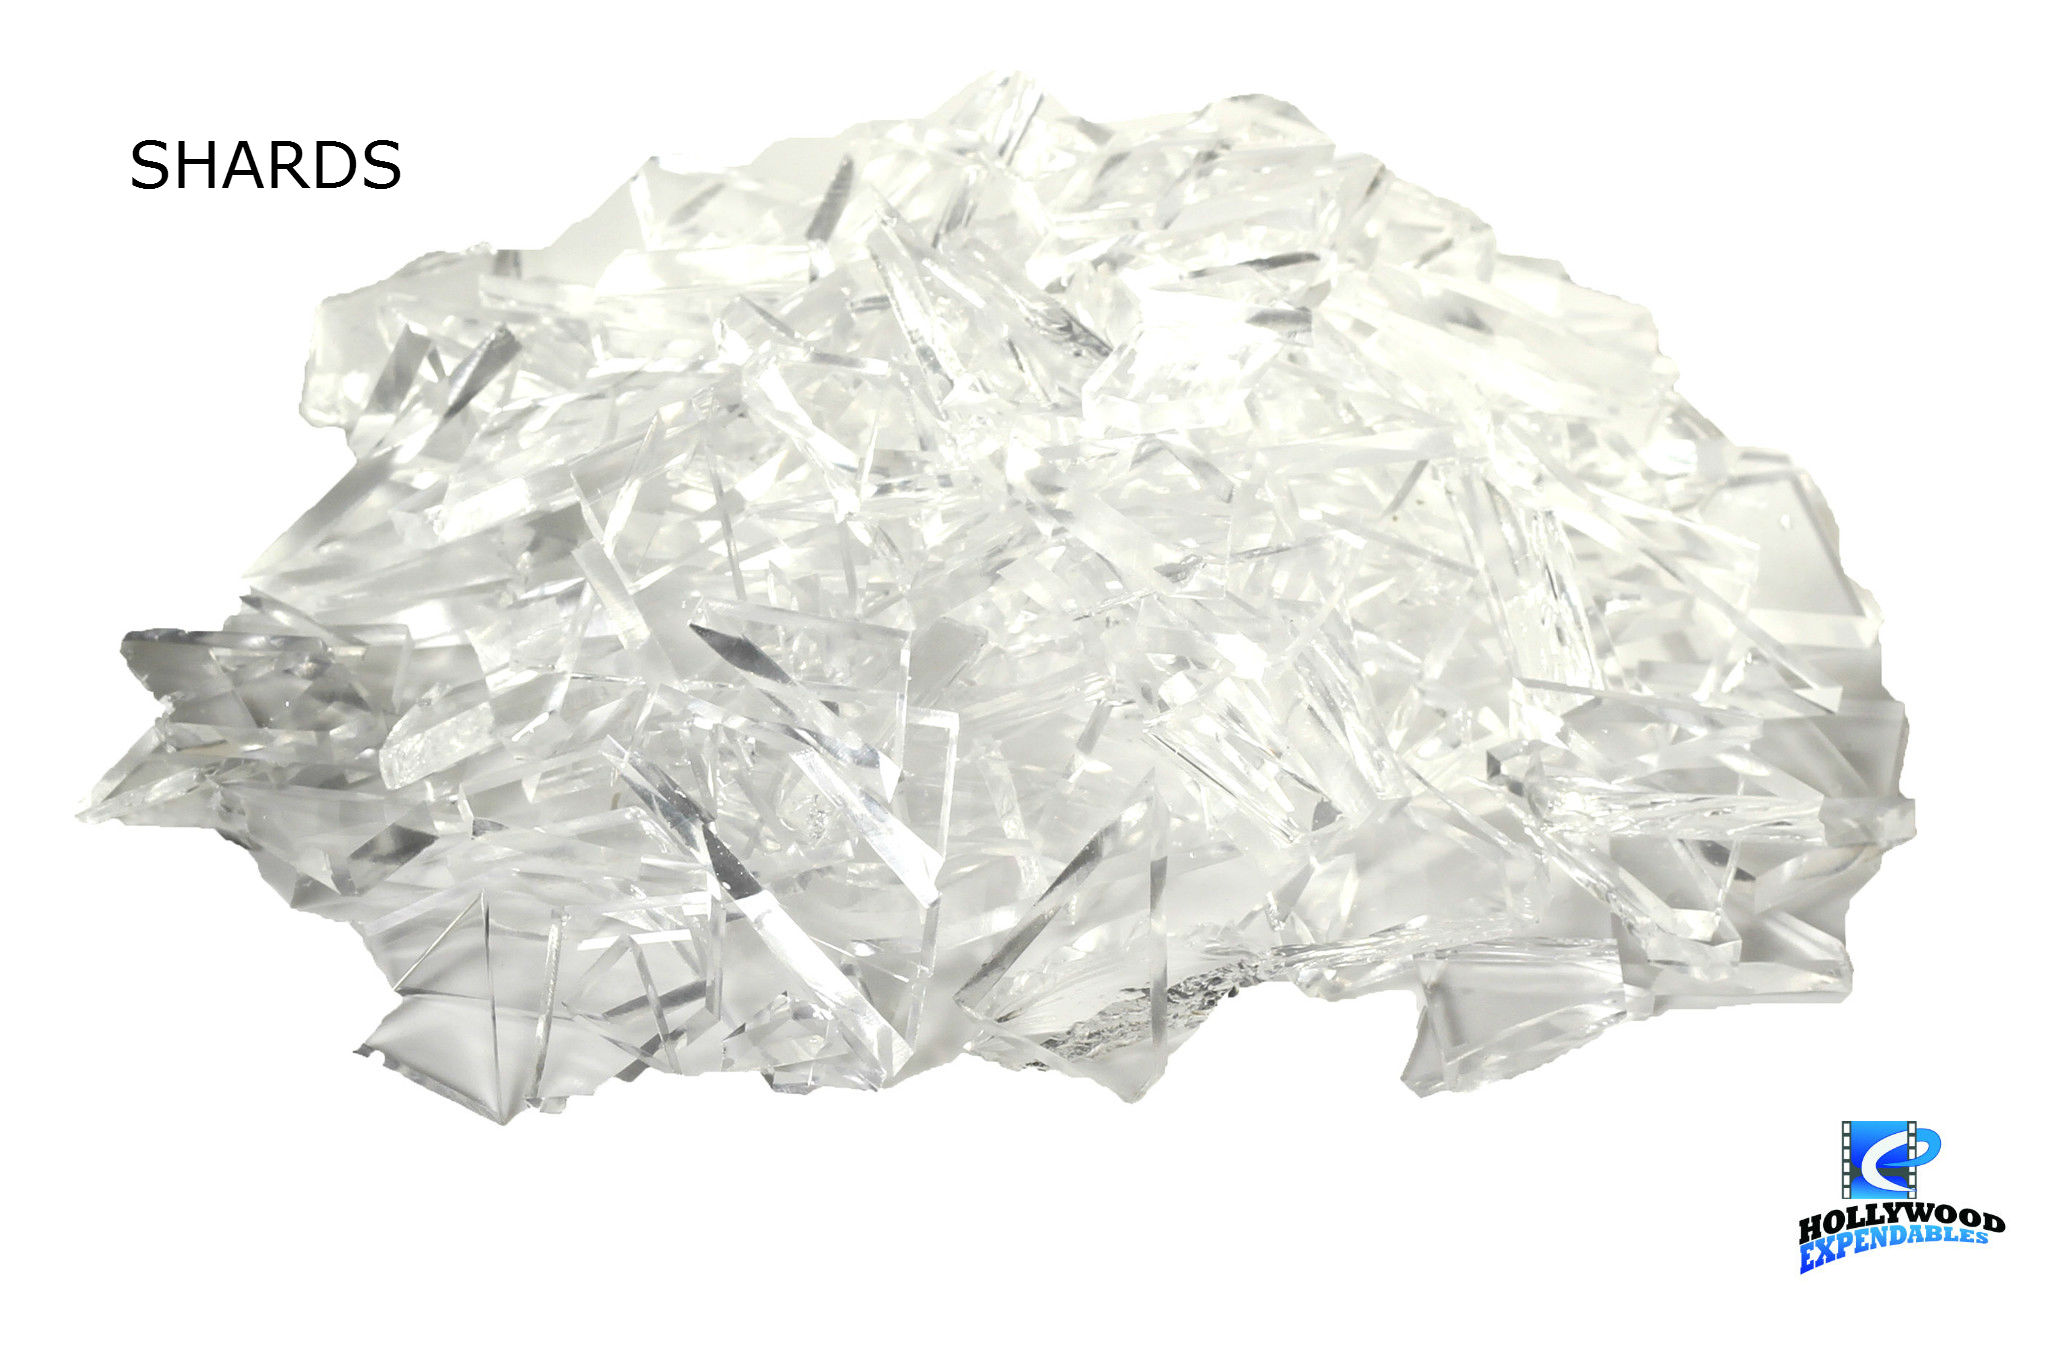 how to draw broken glass shards